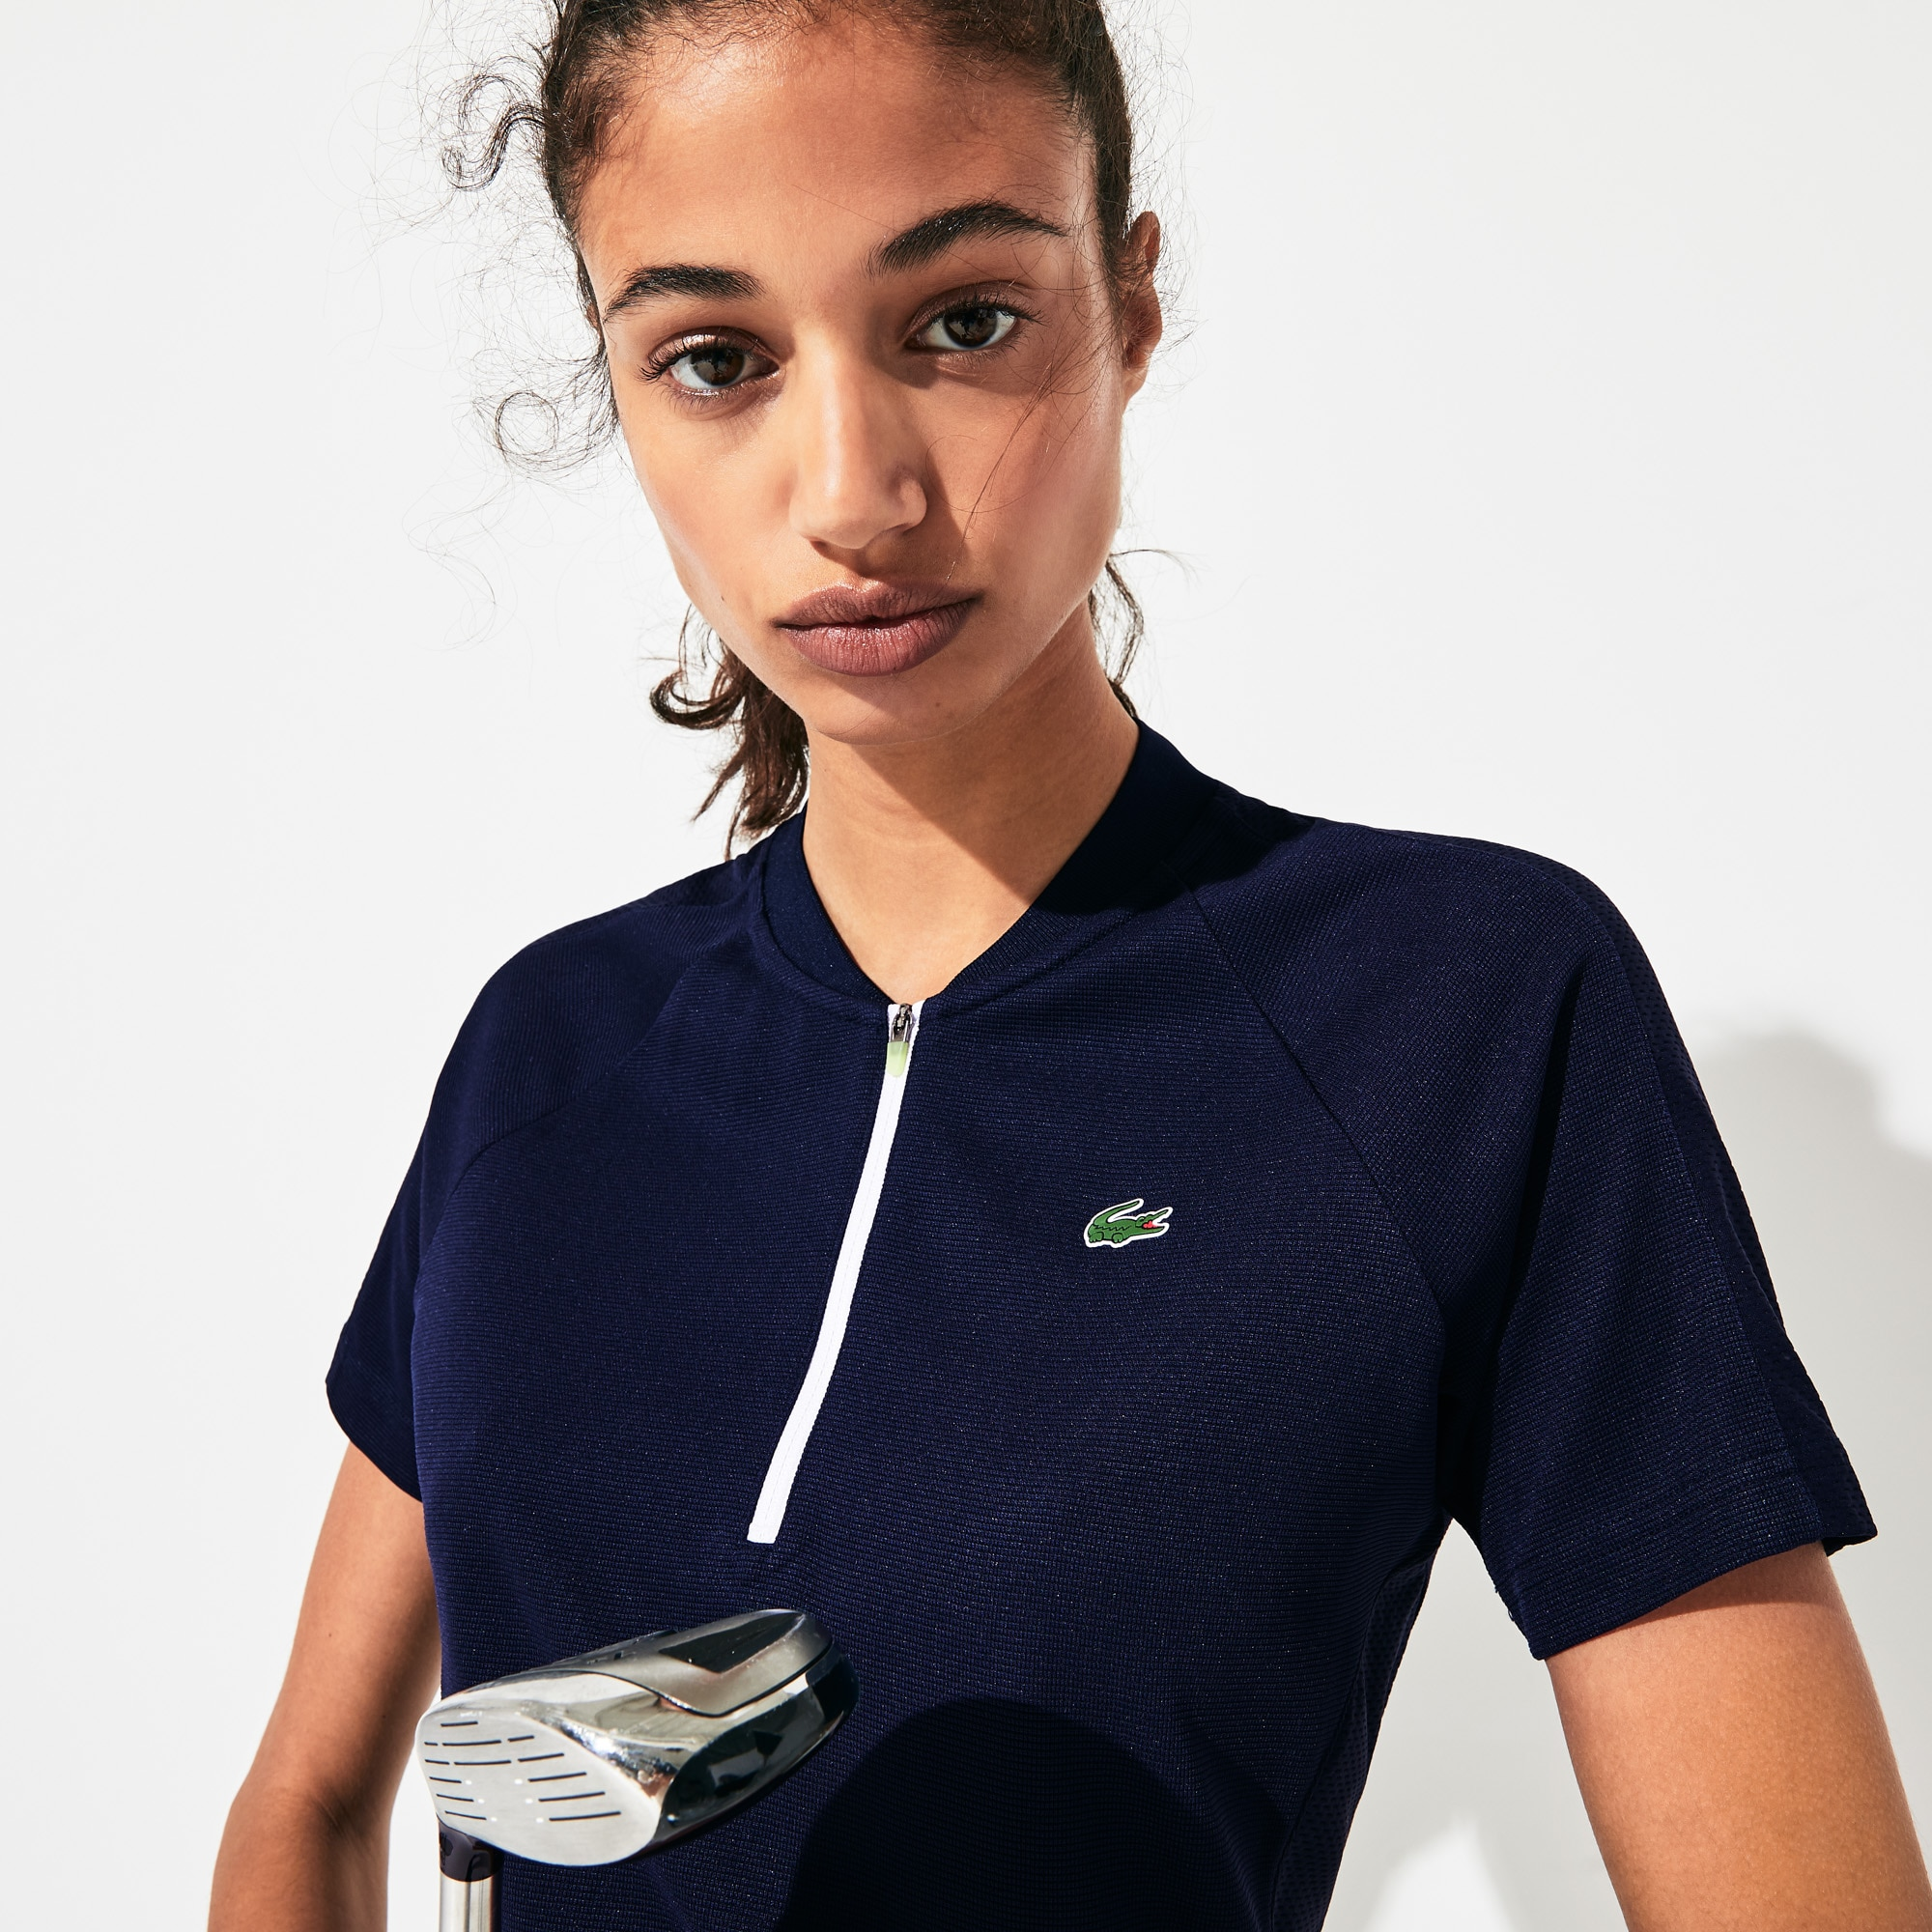 Lacoste Tops Women's SPORT Zip Crewneck Golf Polo